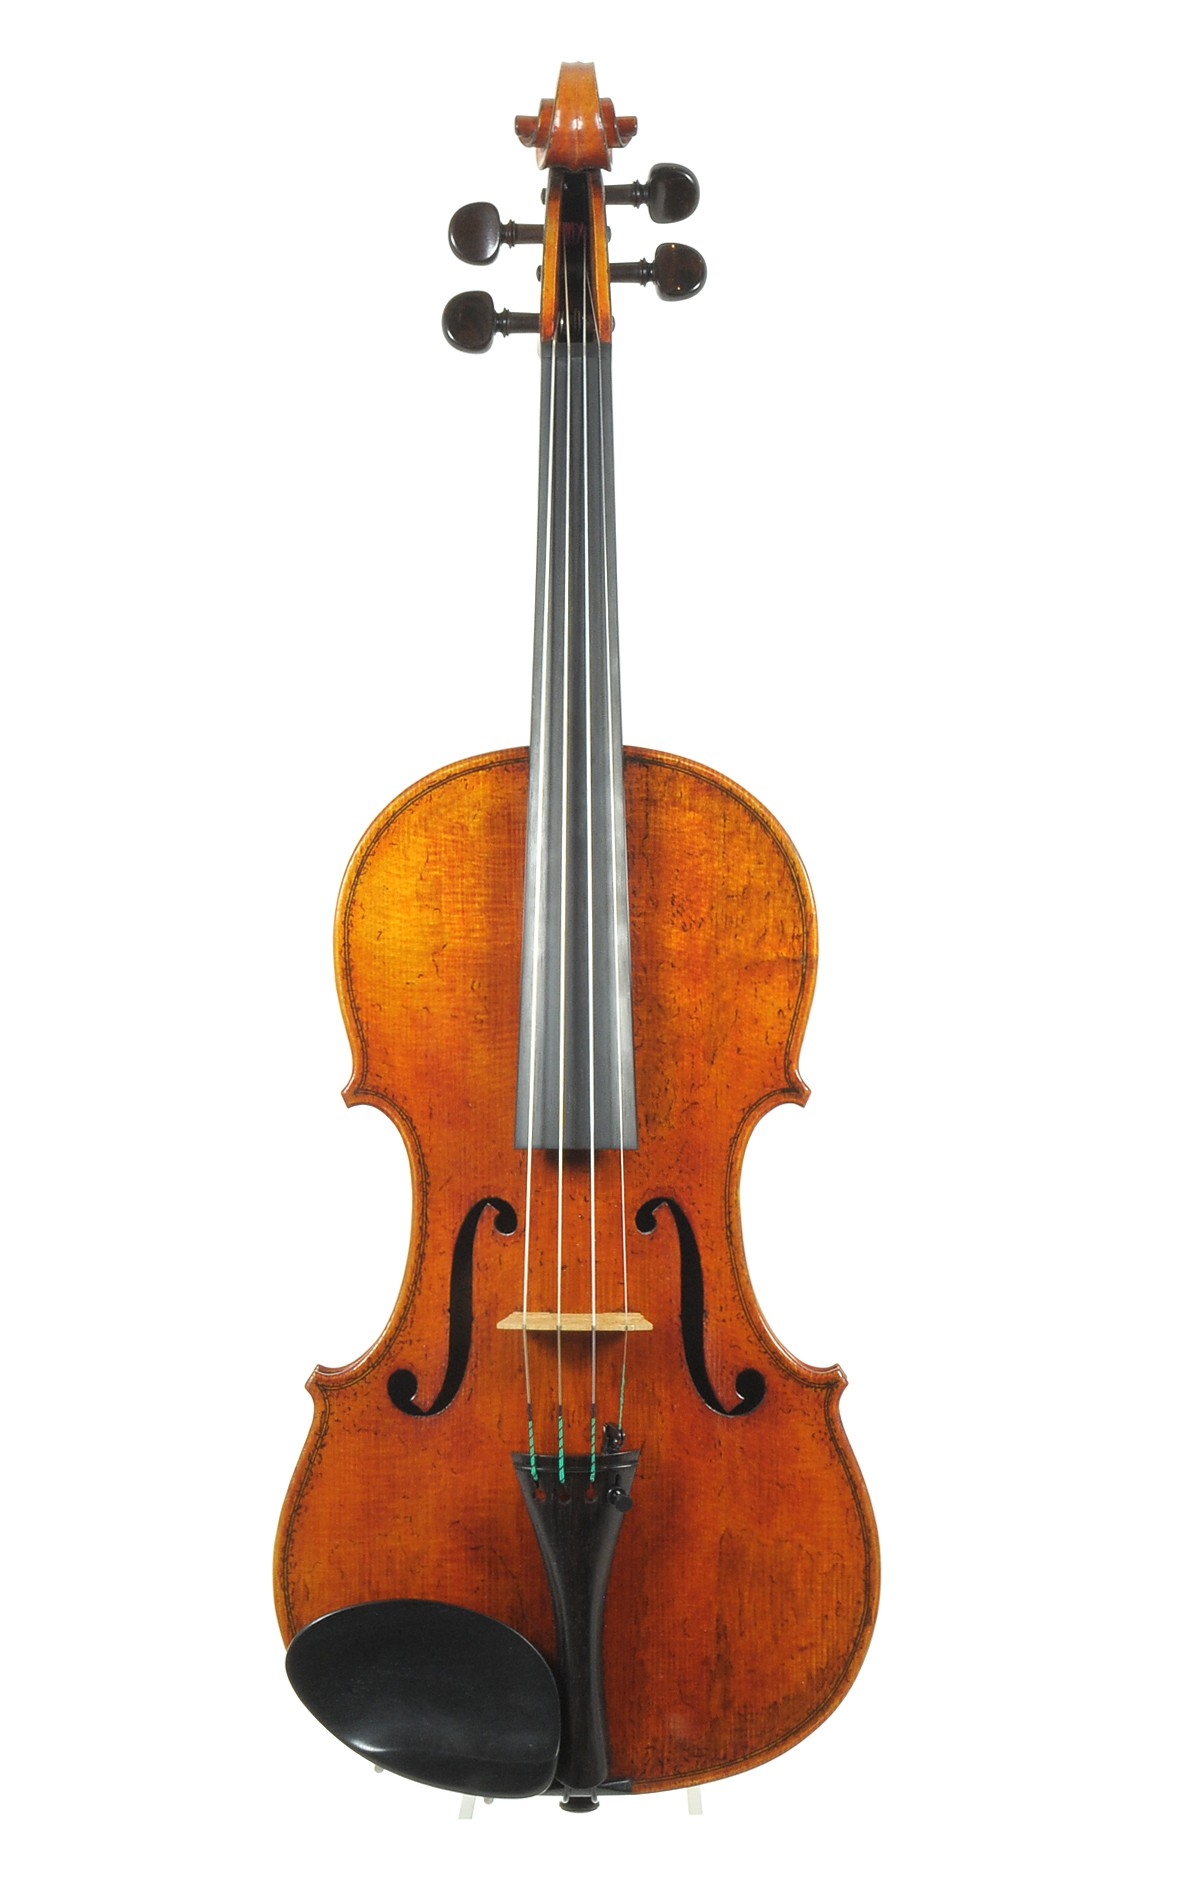 English master violin, Eric Voigt, Manchester